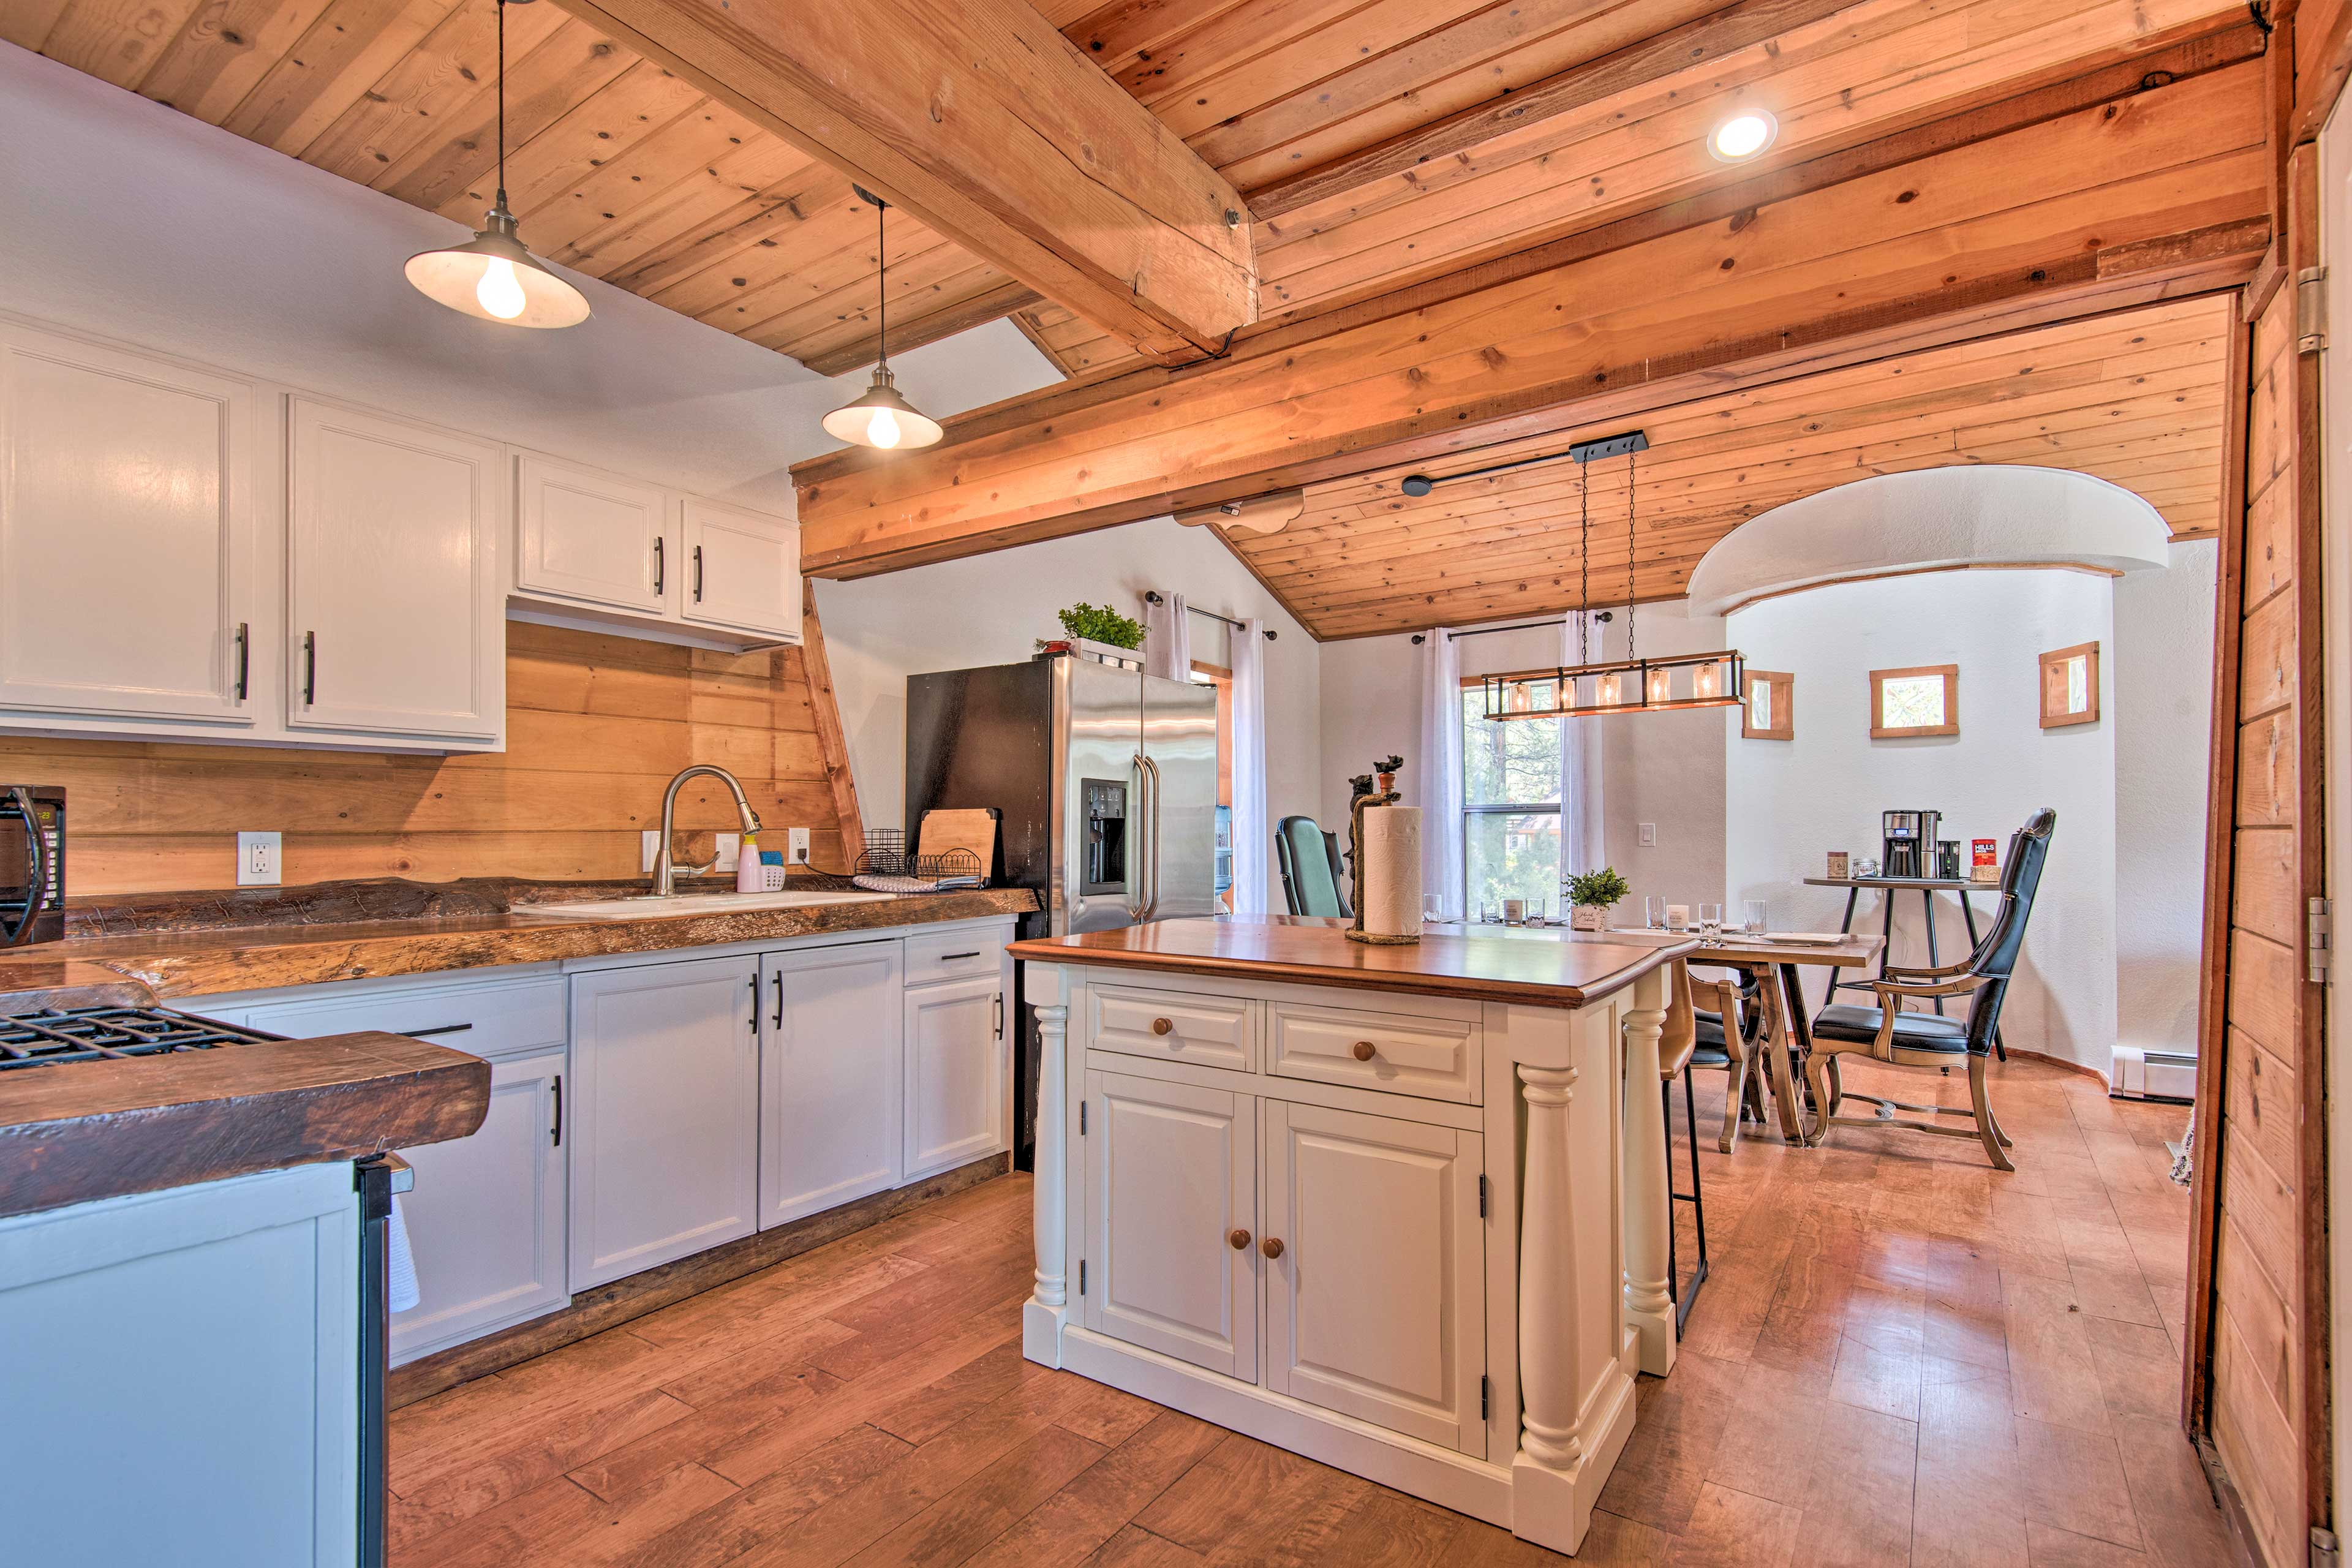 The cabin was recently renovated to feature a sleek, modern design.